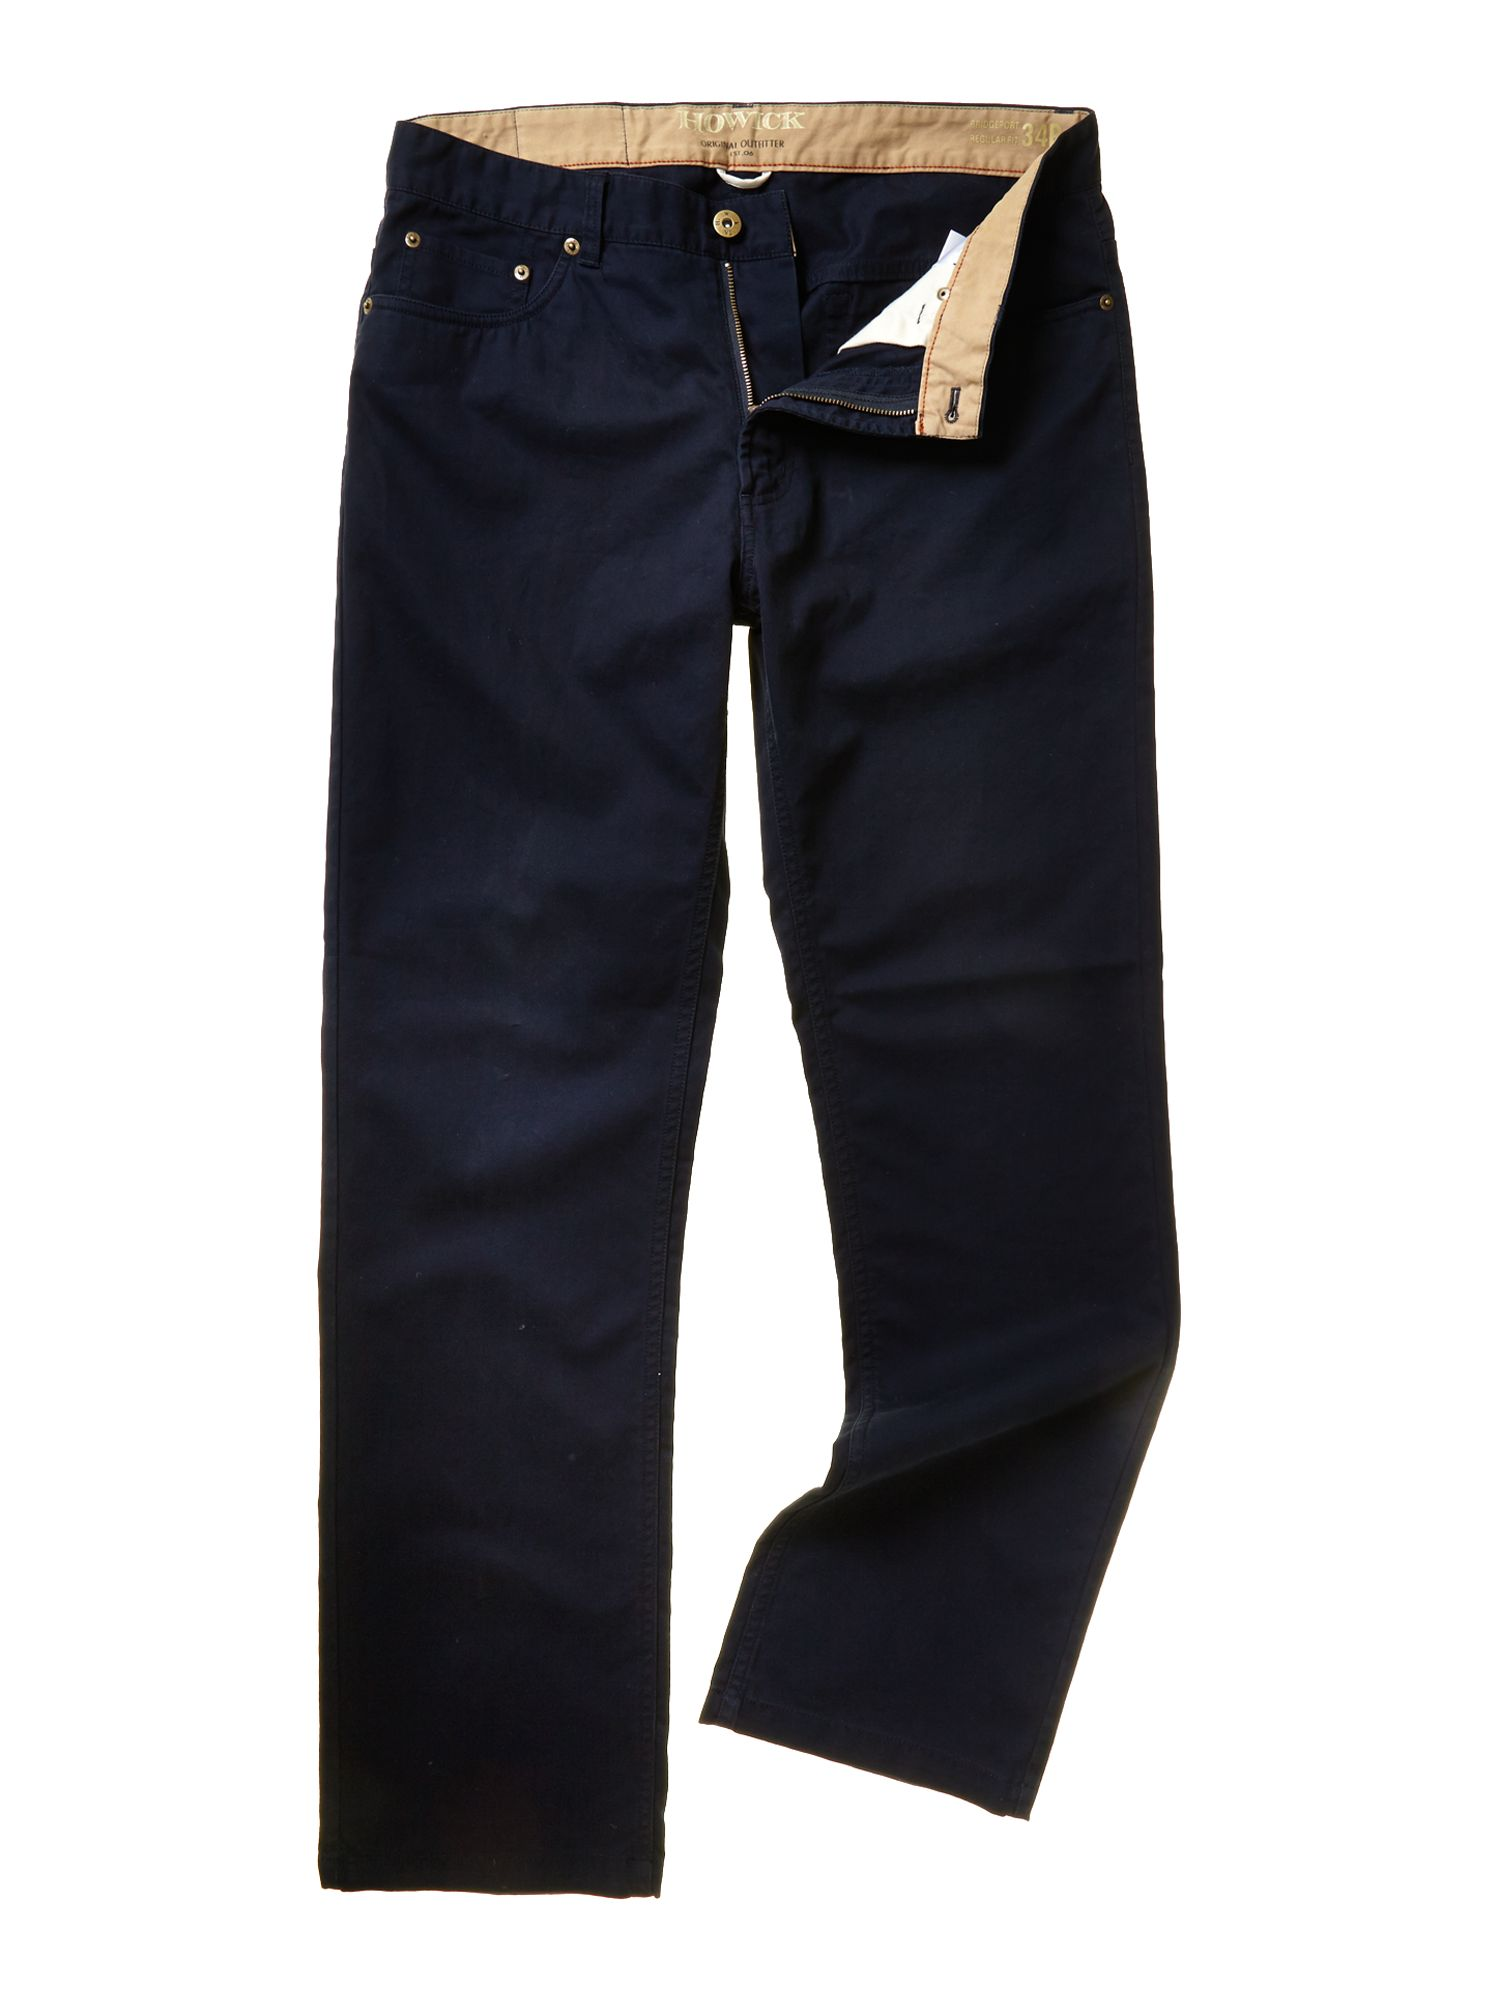 Bridgeport bedford trouser